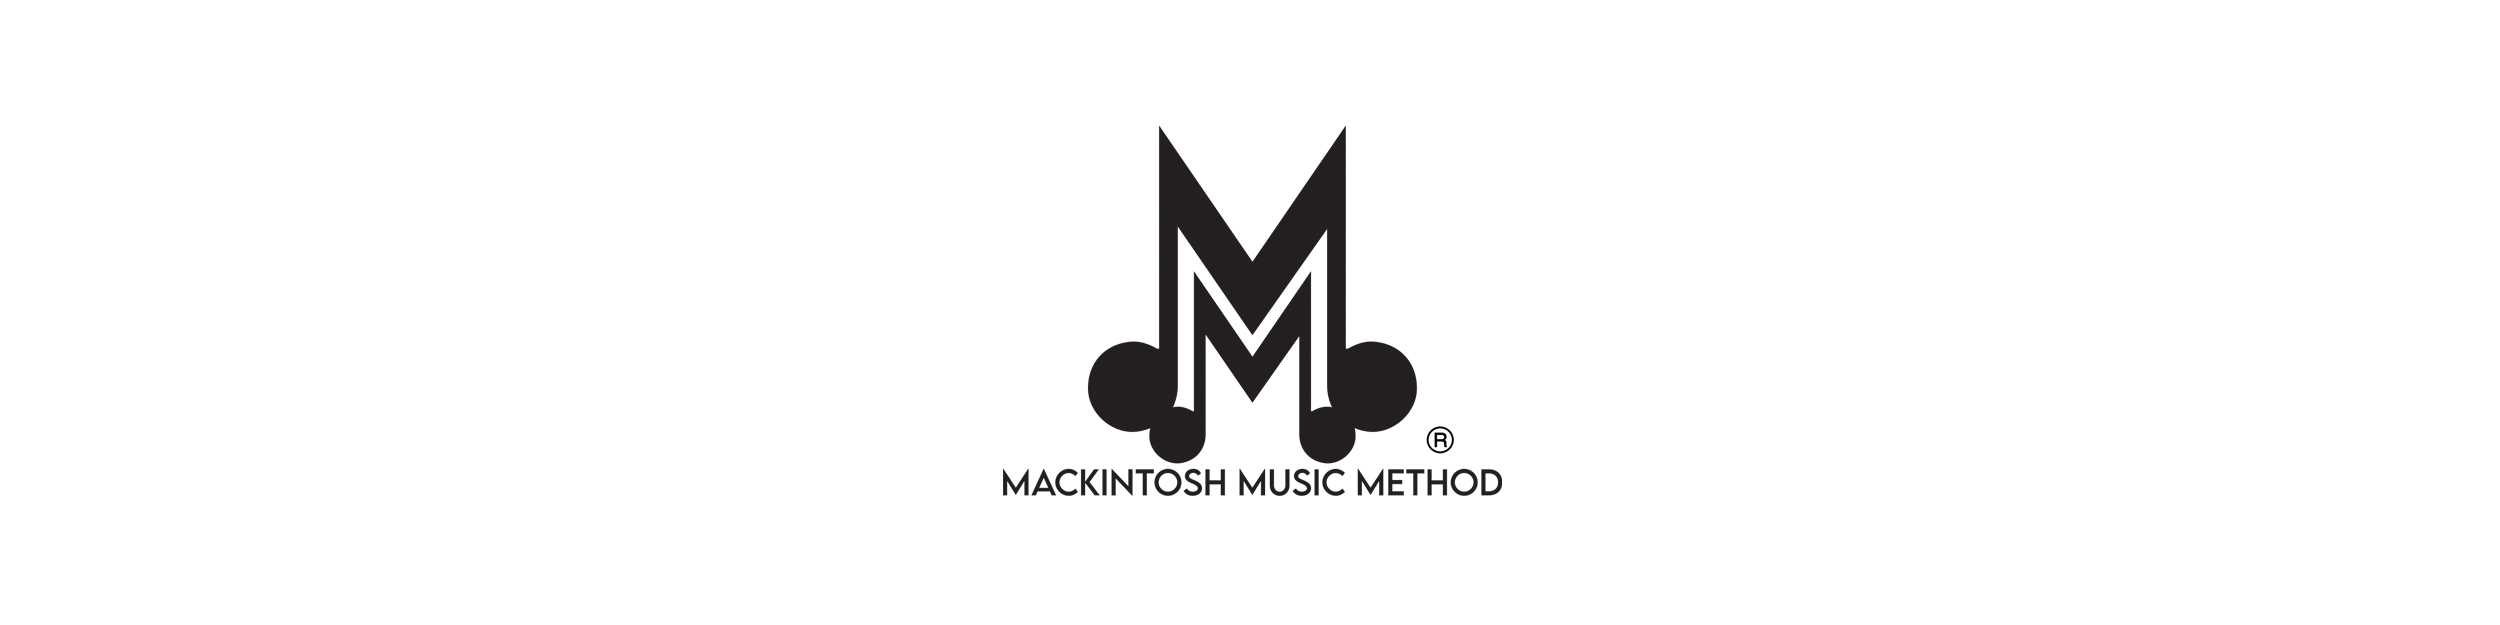 Mackintosh Music Method